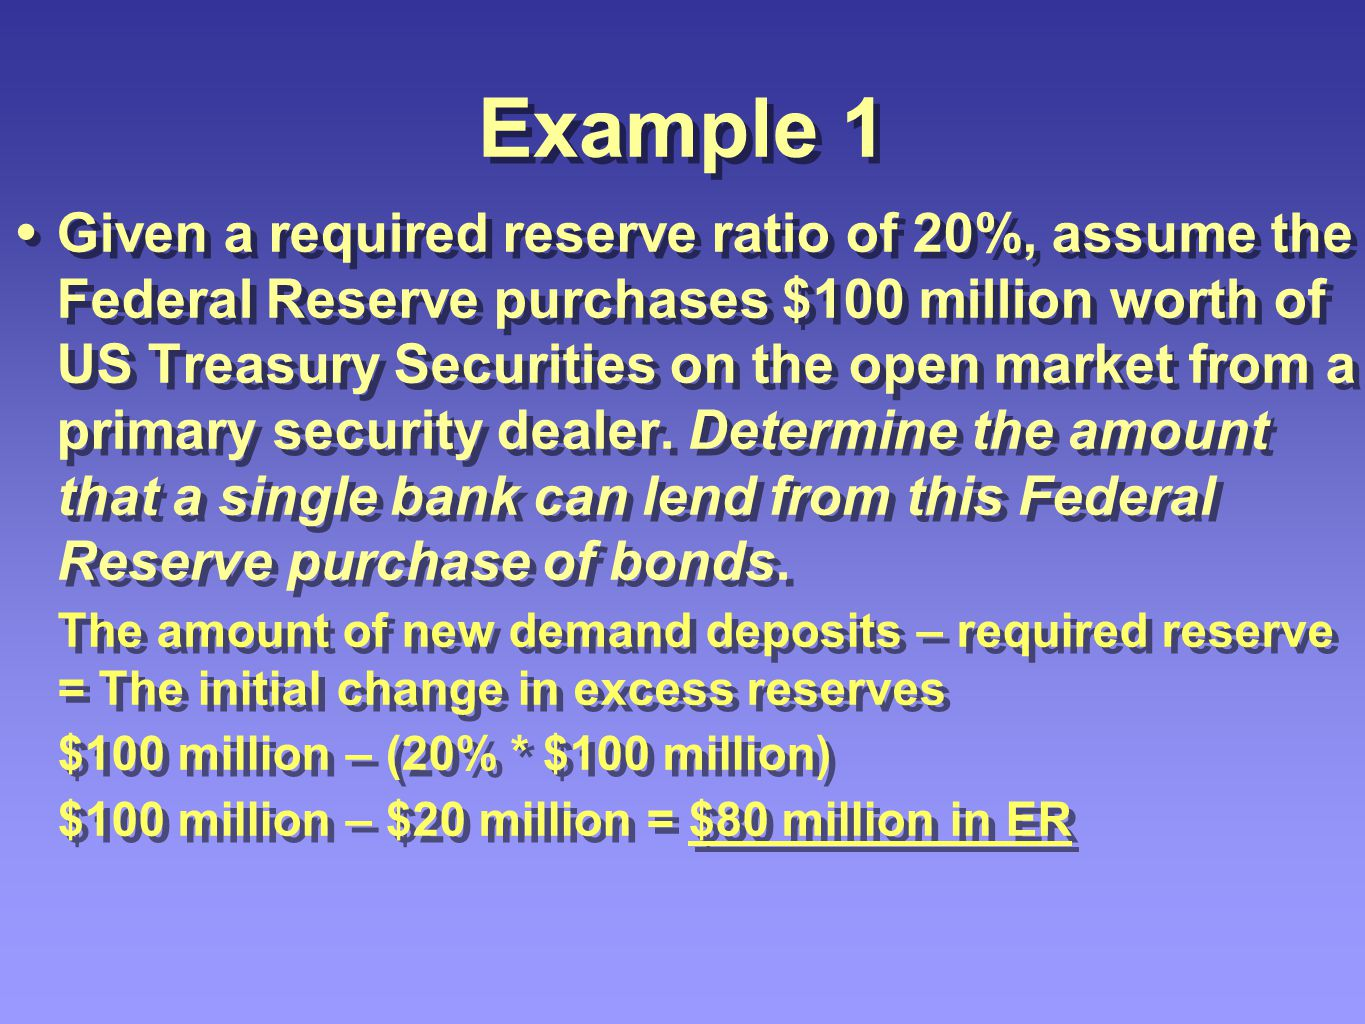 Example 2 Given a required reserve ratio of 20%, assume the Federal Reserve purchases $100 million worth of US Treasury Securities on the open market from a primary security dealer.